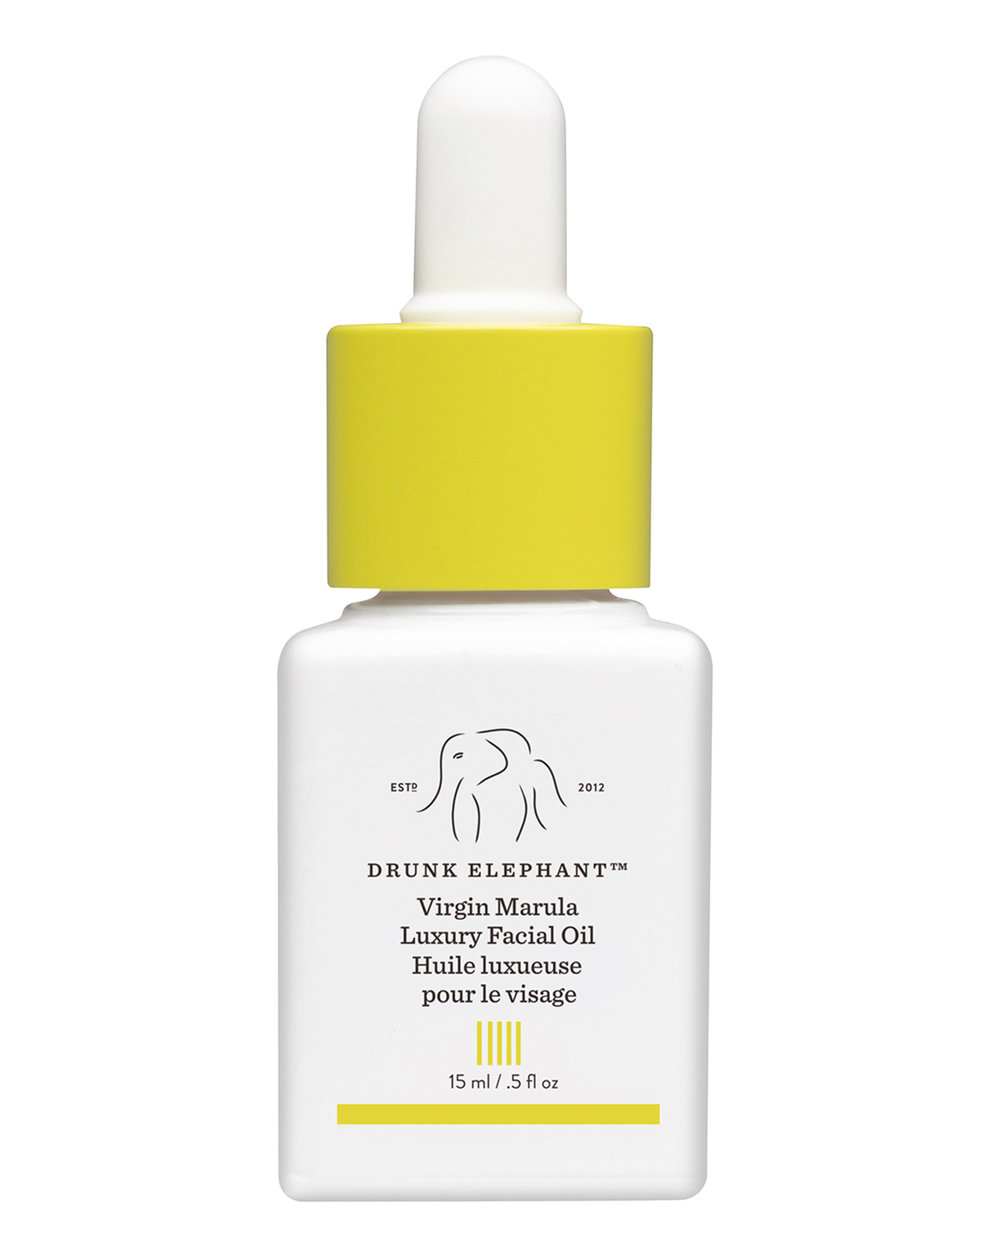 dru002_15ml_drunkelephant_virginmarulaluxuryfacialoil_15ml_1560x1960-i6xu9.jpg